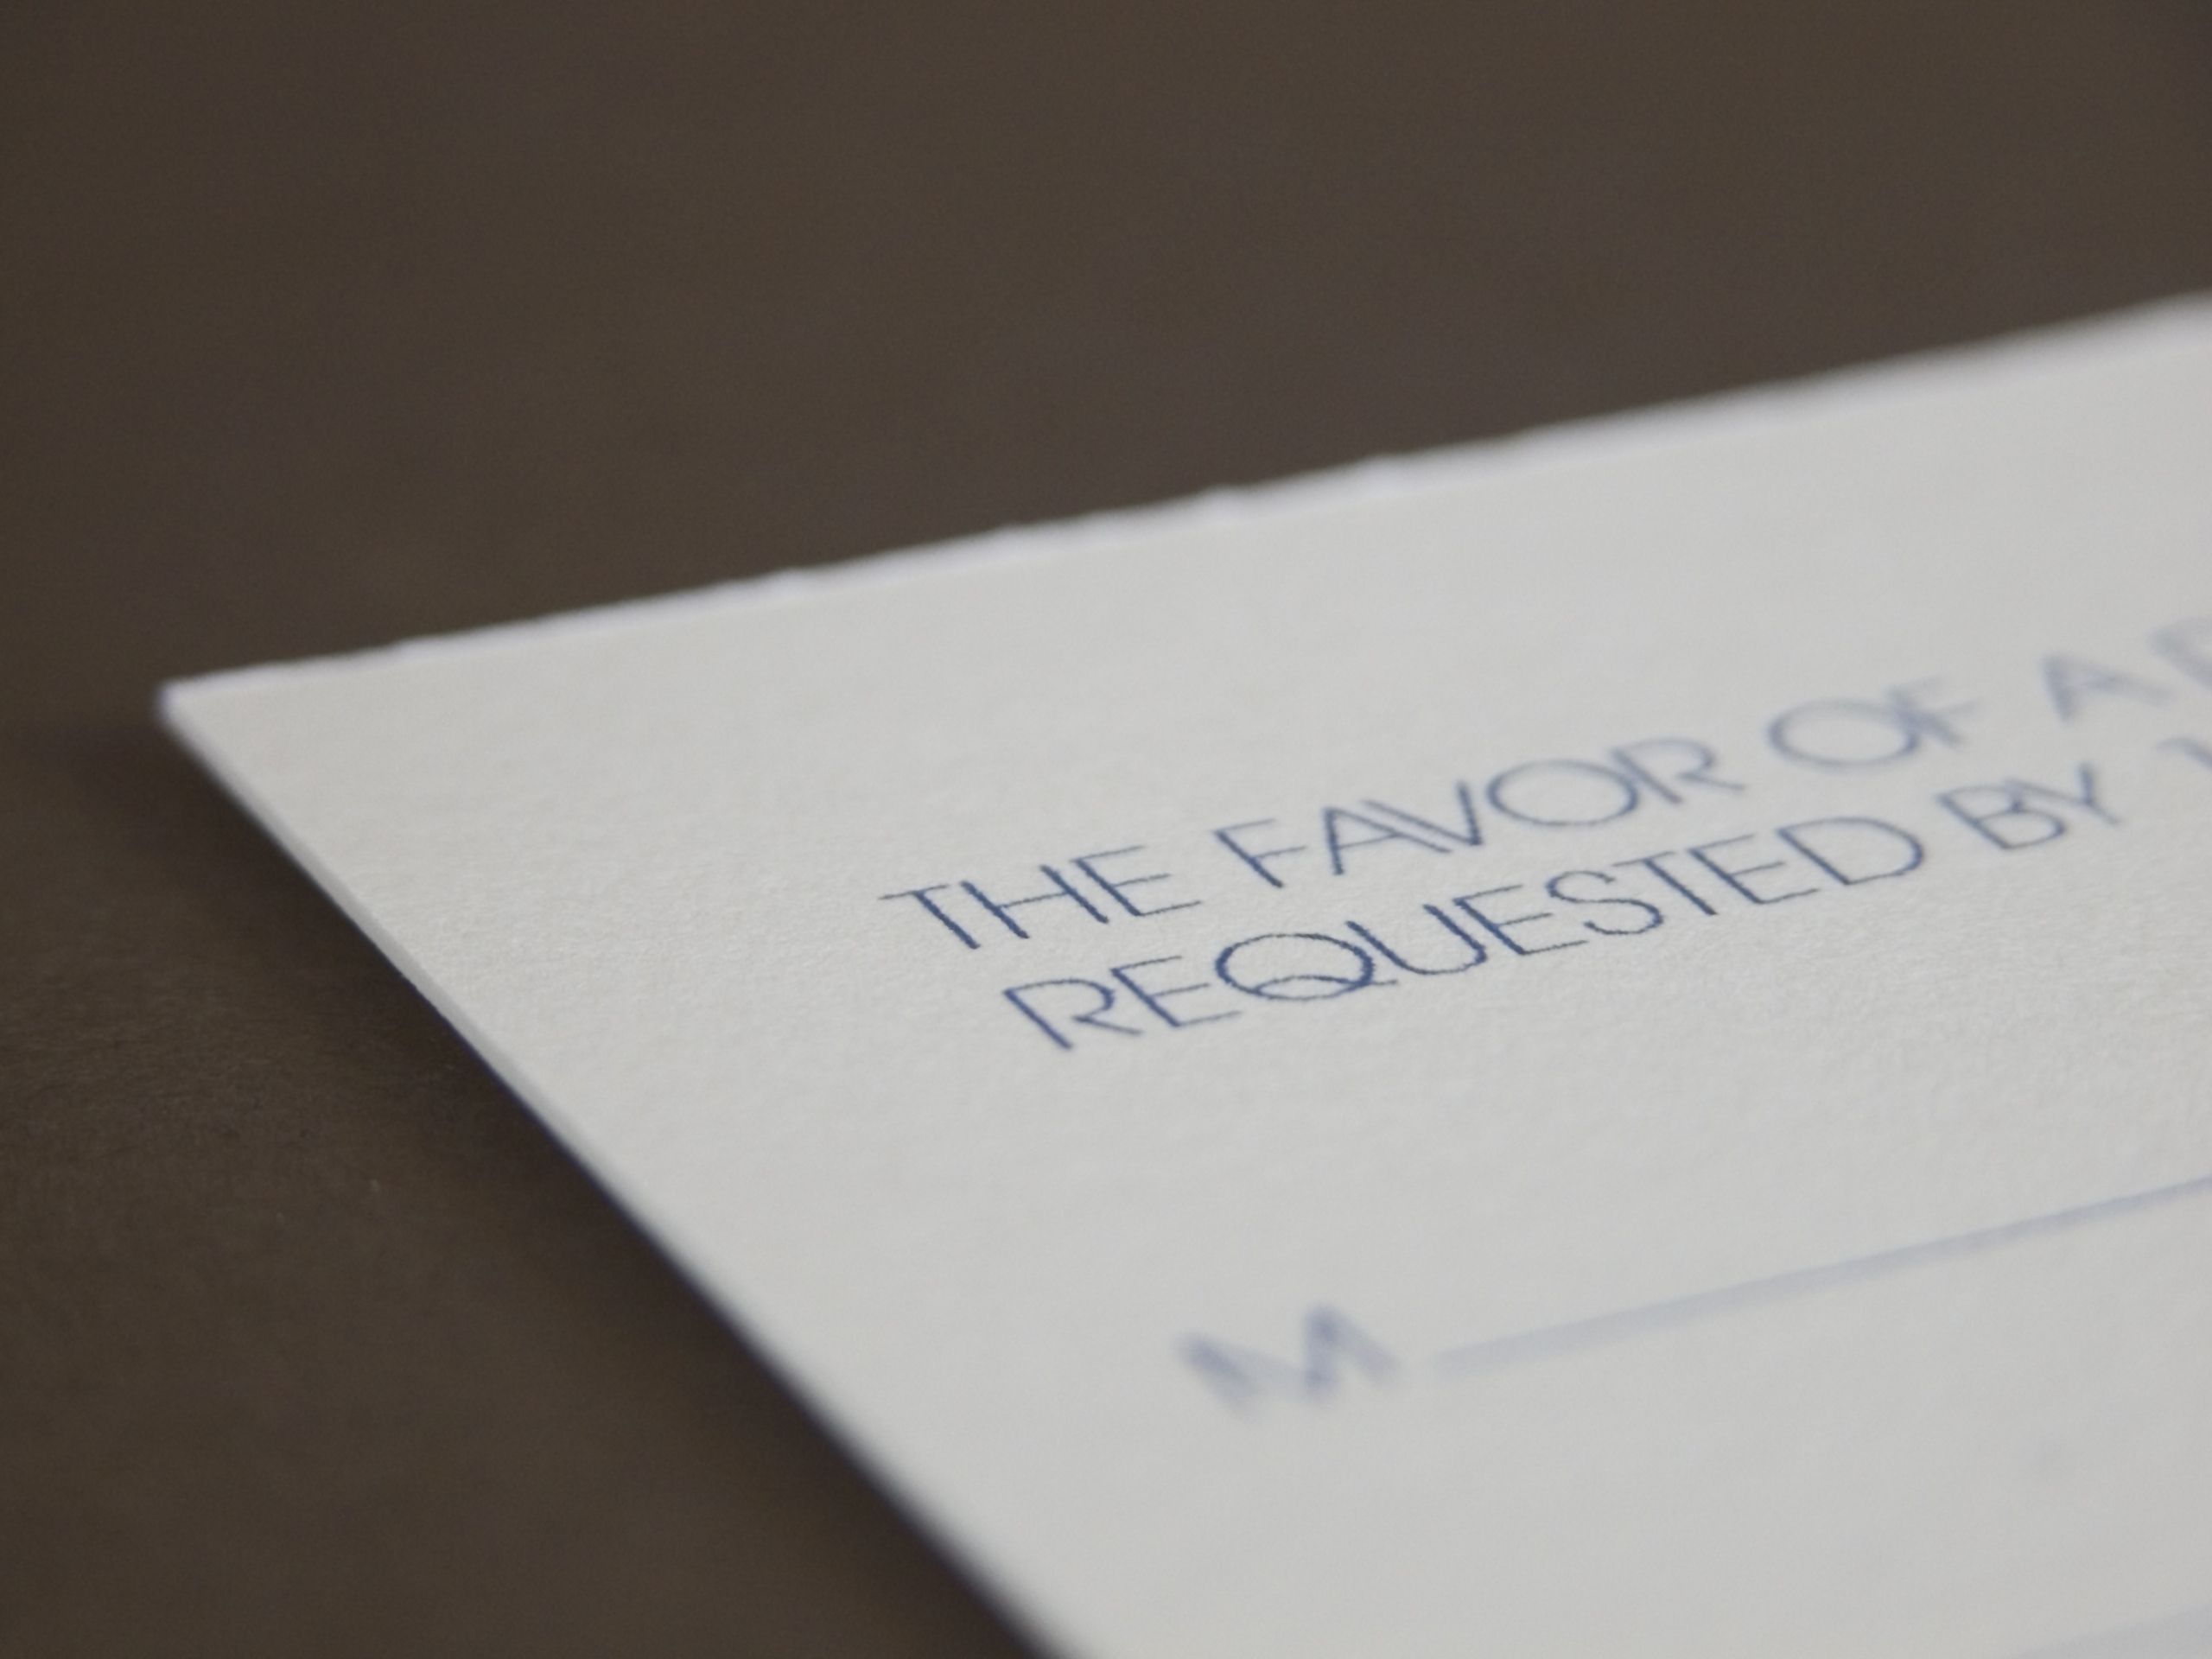 How to address your wedding invitations do you know how to address wedding response envelopes monicamarmolfo Images